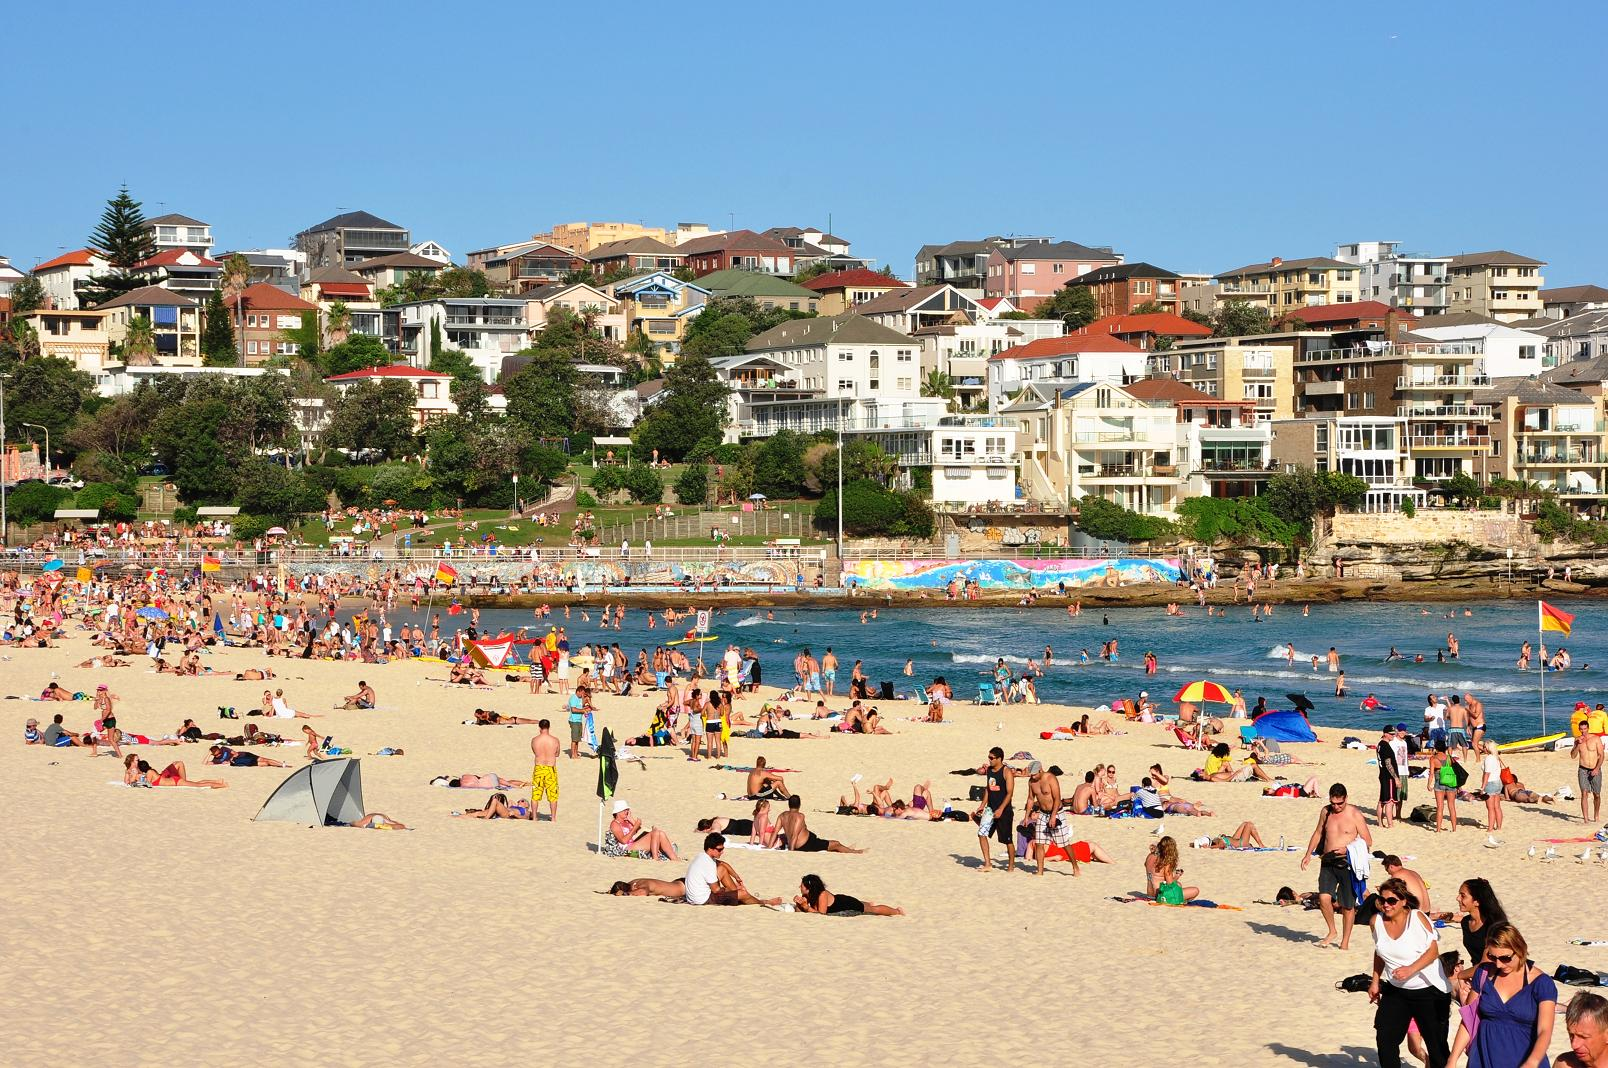 Sydney and its beaches